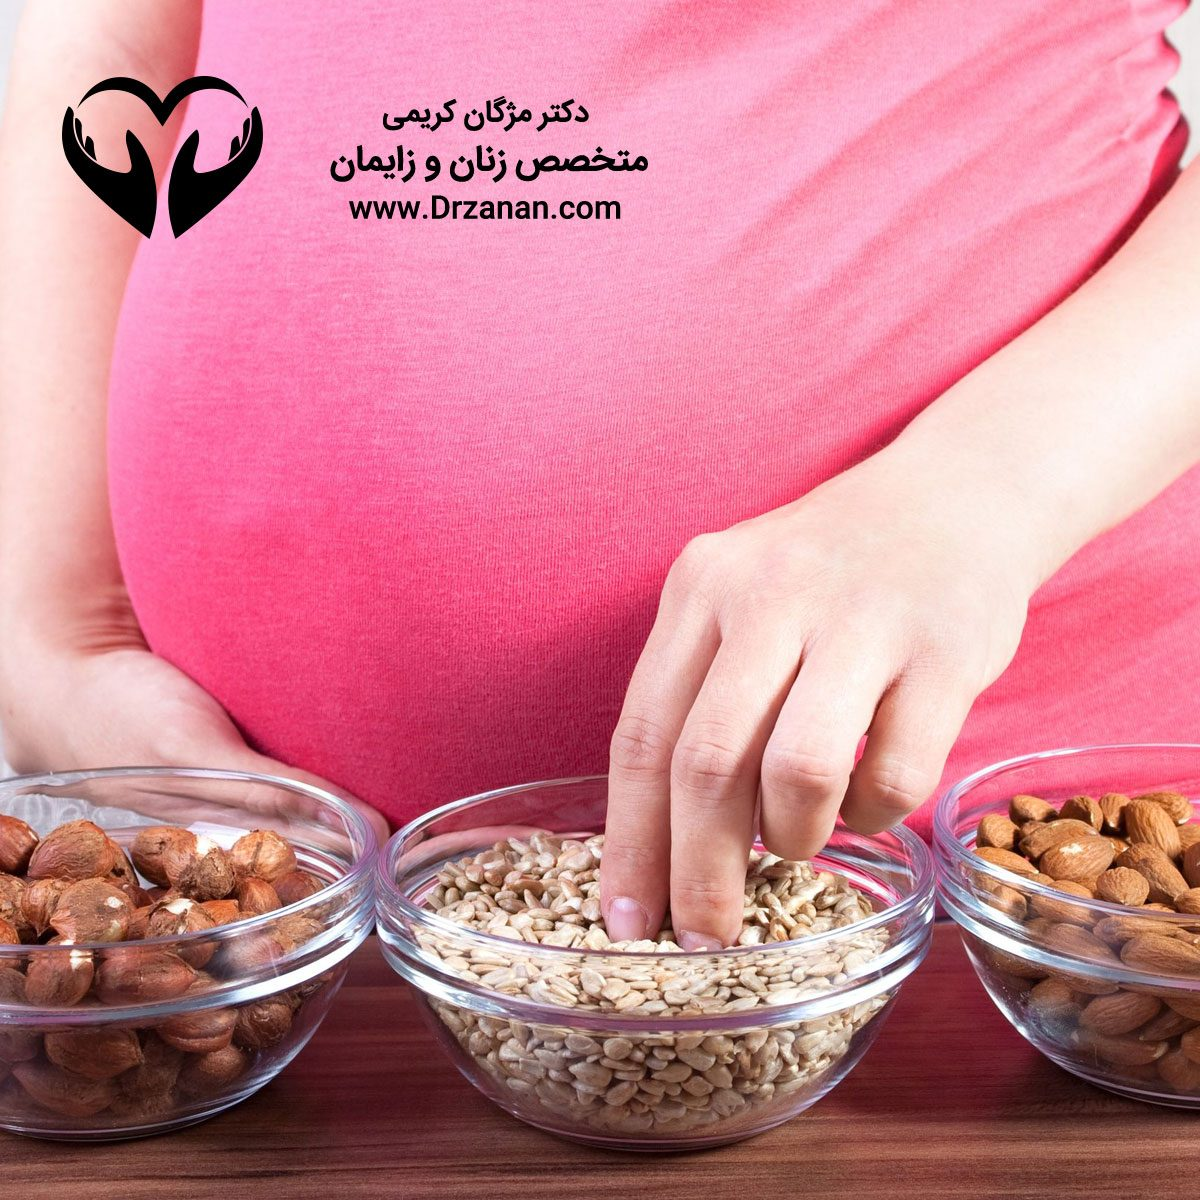 how-should-pregnant-women-eat-1200x1200.jpg